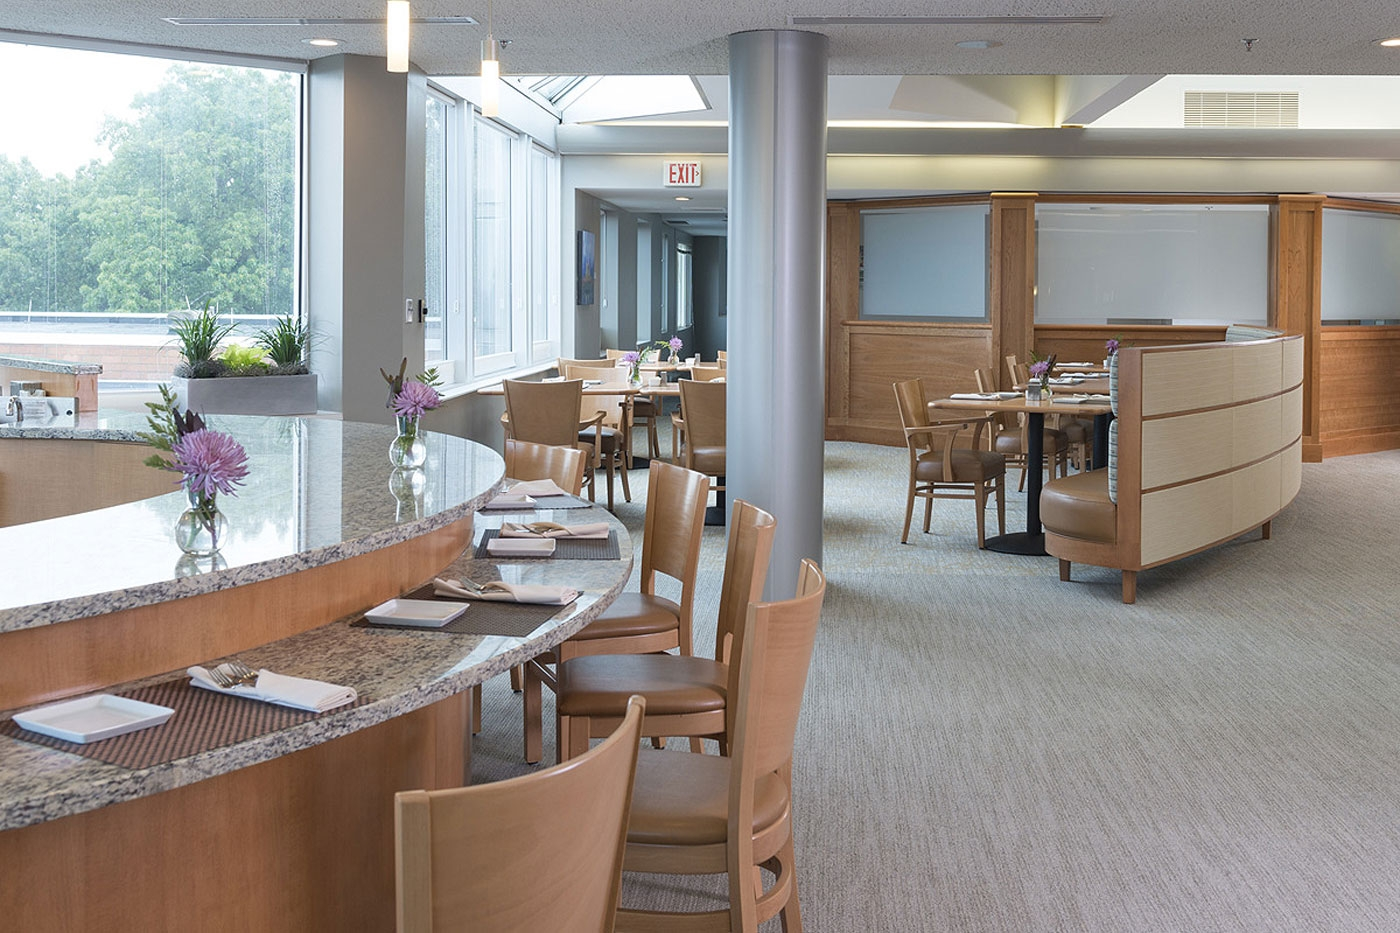 Seniors at this CCRC can belly up to the counter at this restaurant-styled dining area